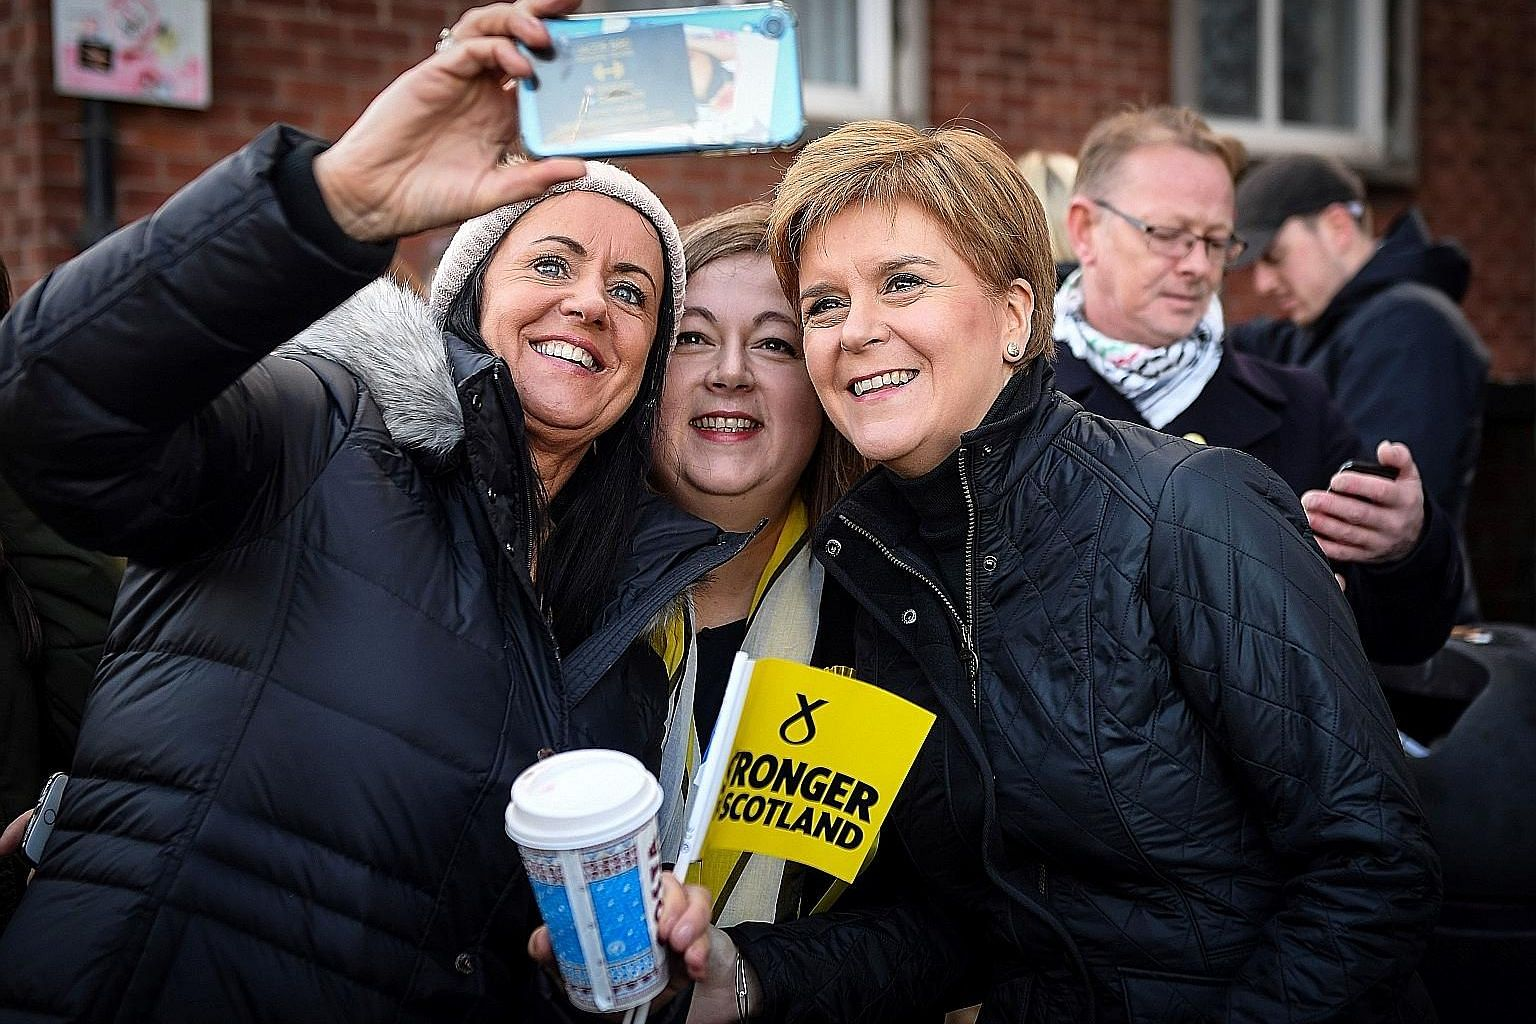 Scottish National Party (SNP) leader Nicola Sturgeon (third from far left) with supporters in Glasgow, Scotland, on Sunday. Ms Sturgeon told voters that a vote for the SNP is a vote to escape Brexit. PHOTO: AGENCE FRANCE-PRESSE